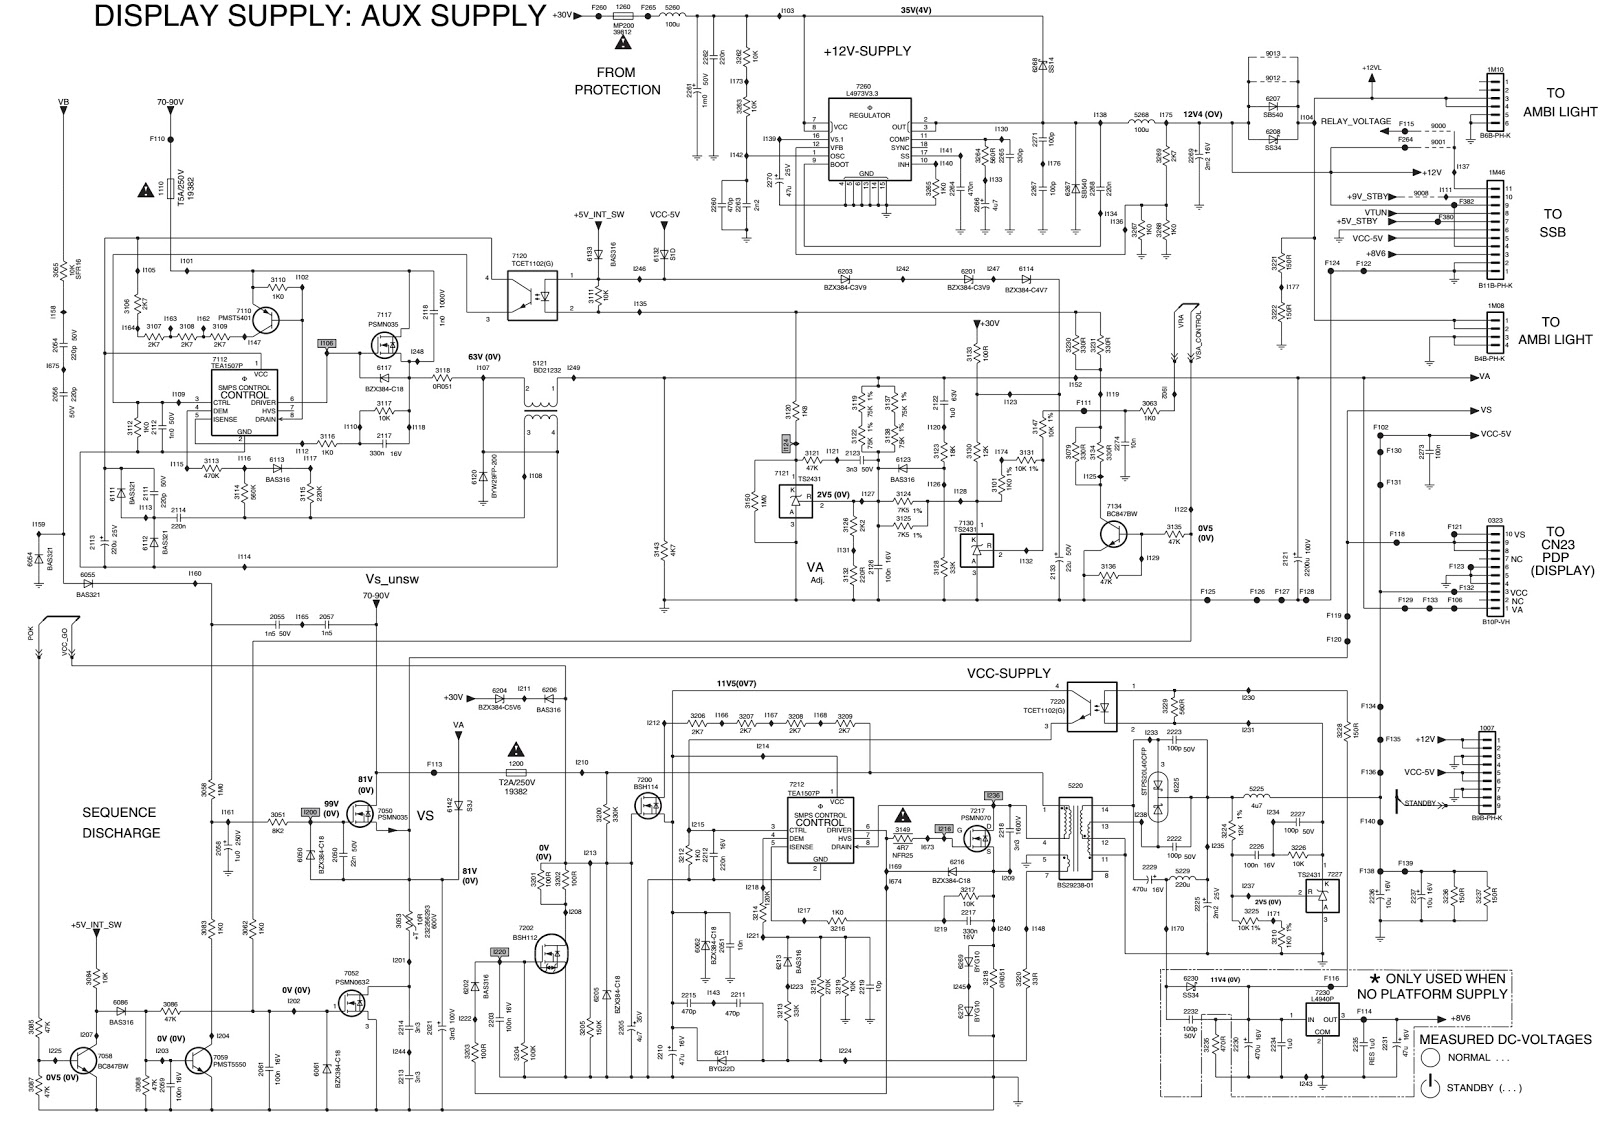 philips 26pf9531 1 led tv power supply schematic. Black Bedroom Furniture Sets. Home Design Ideas